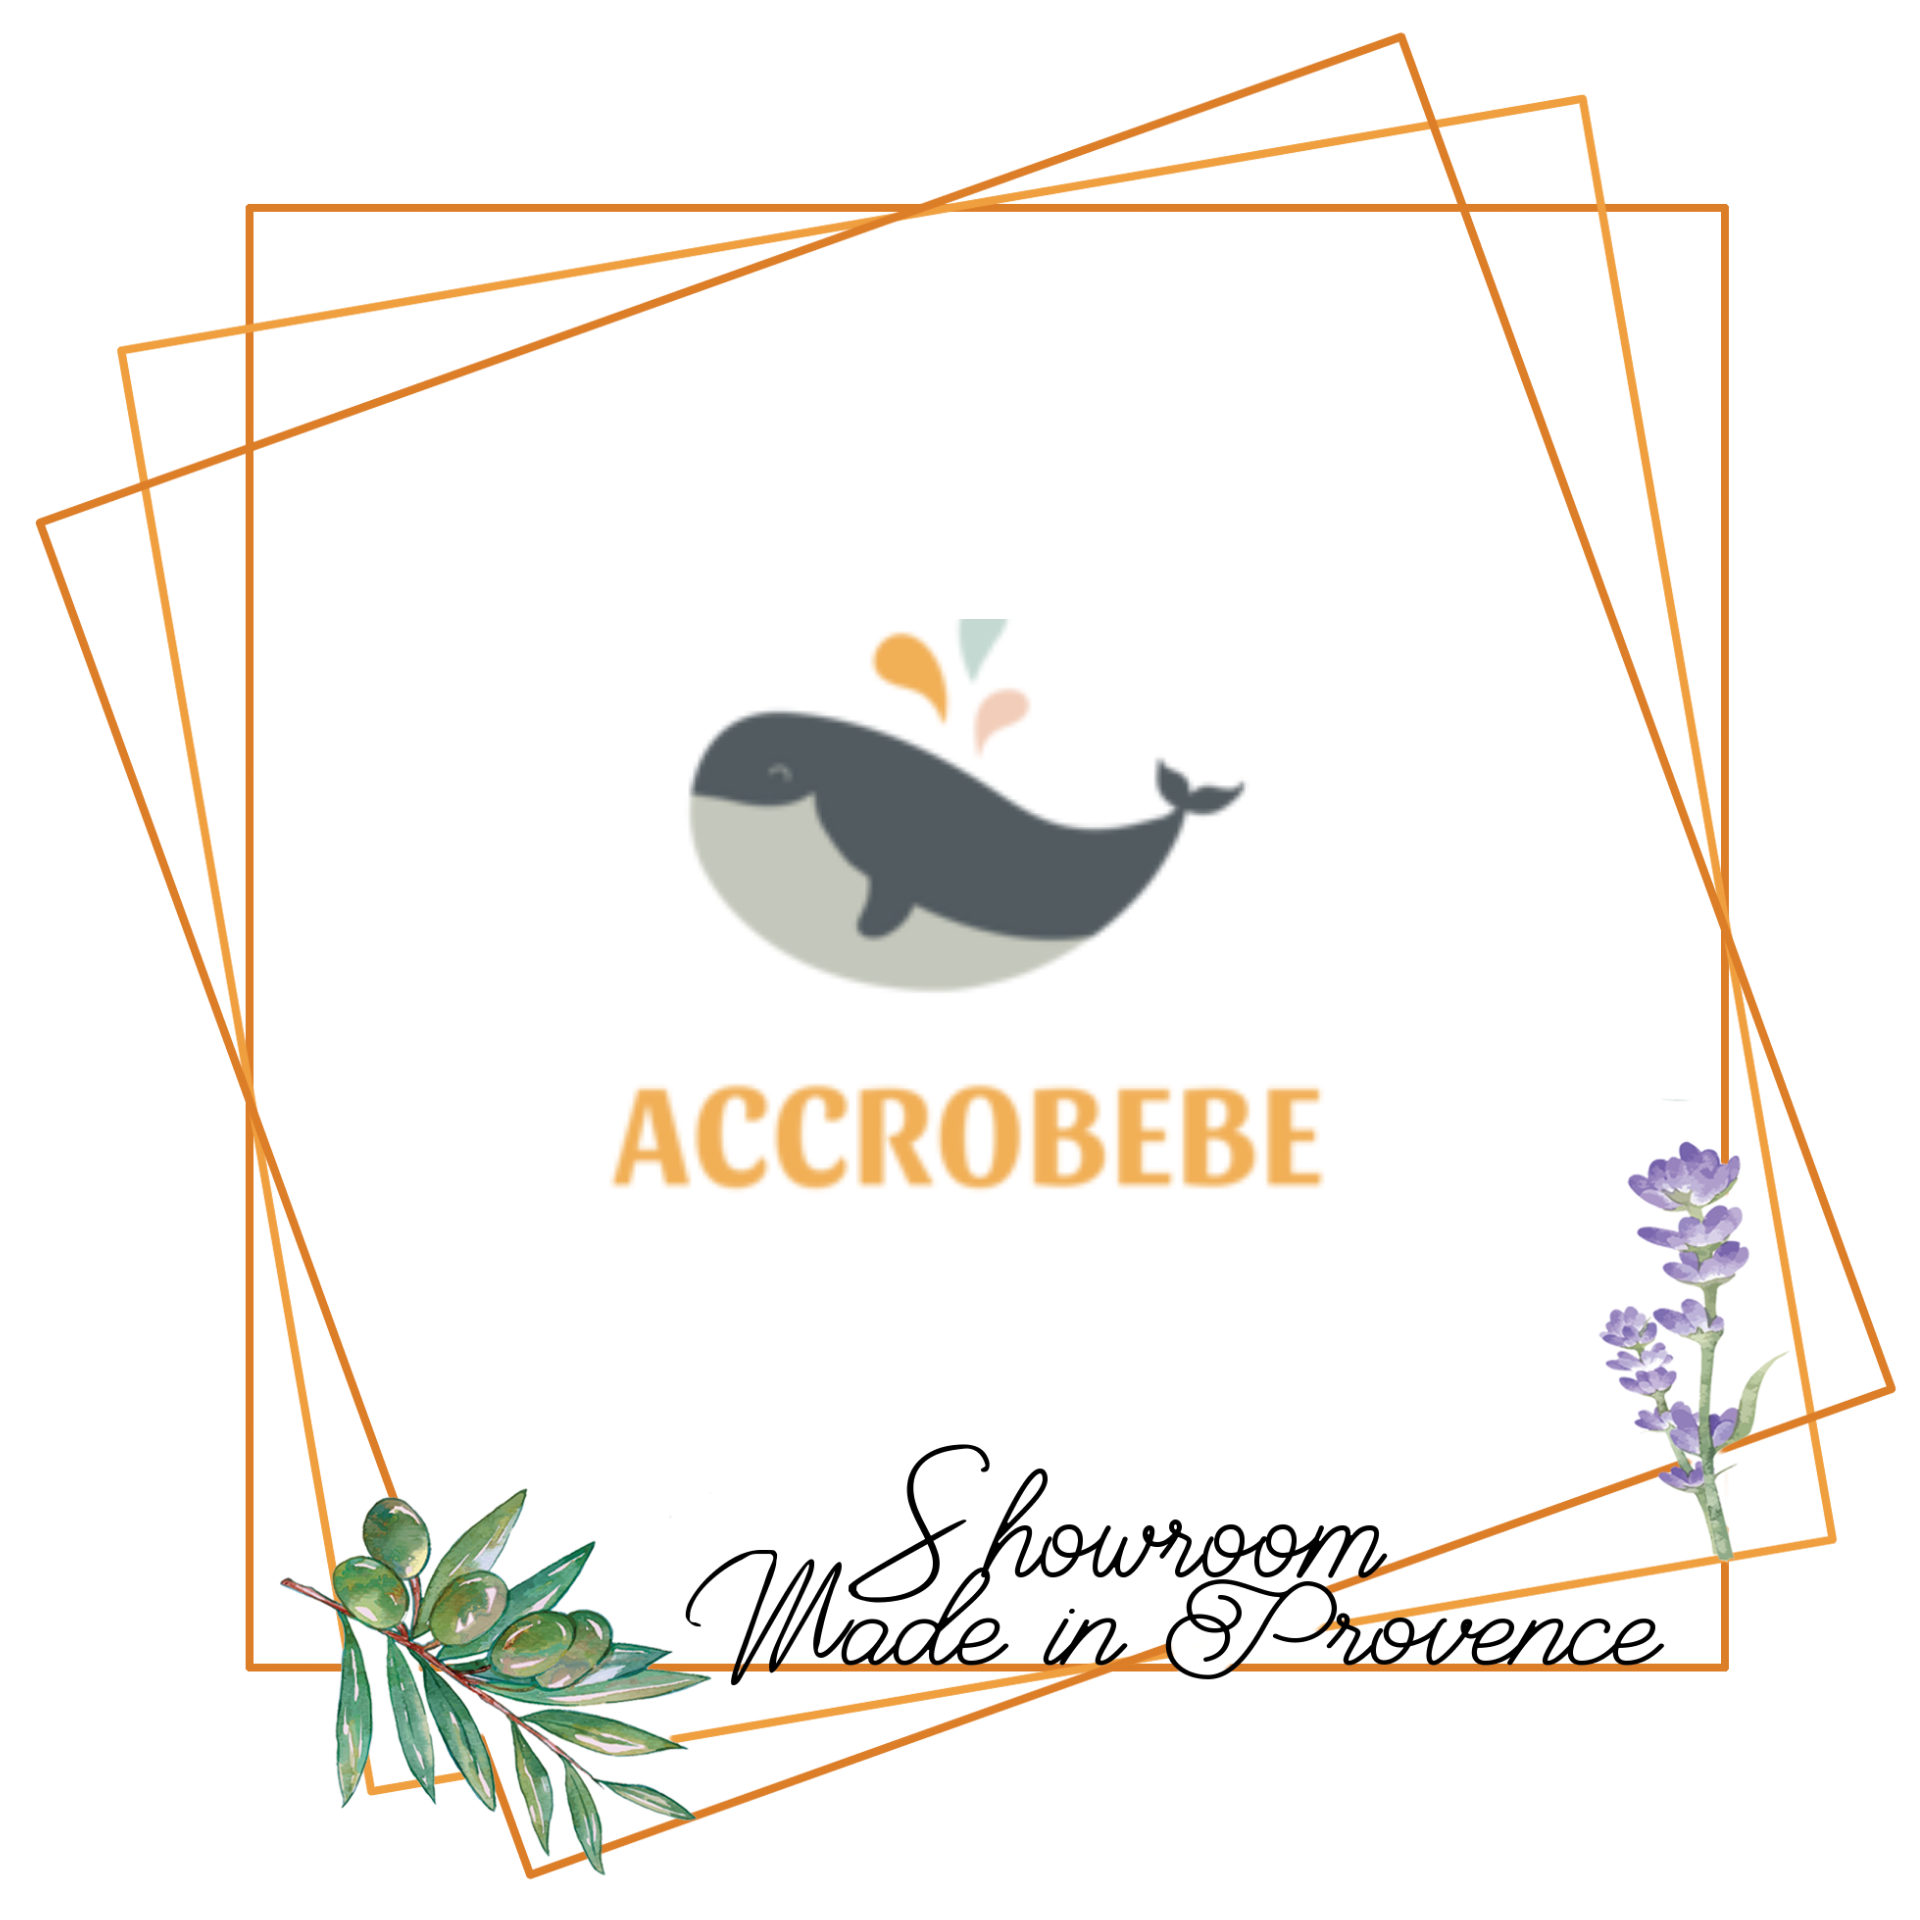 accrobébé showroom made in provence